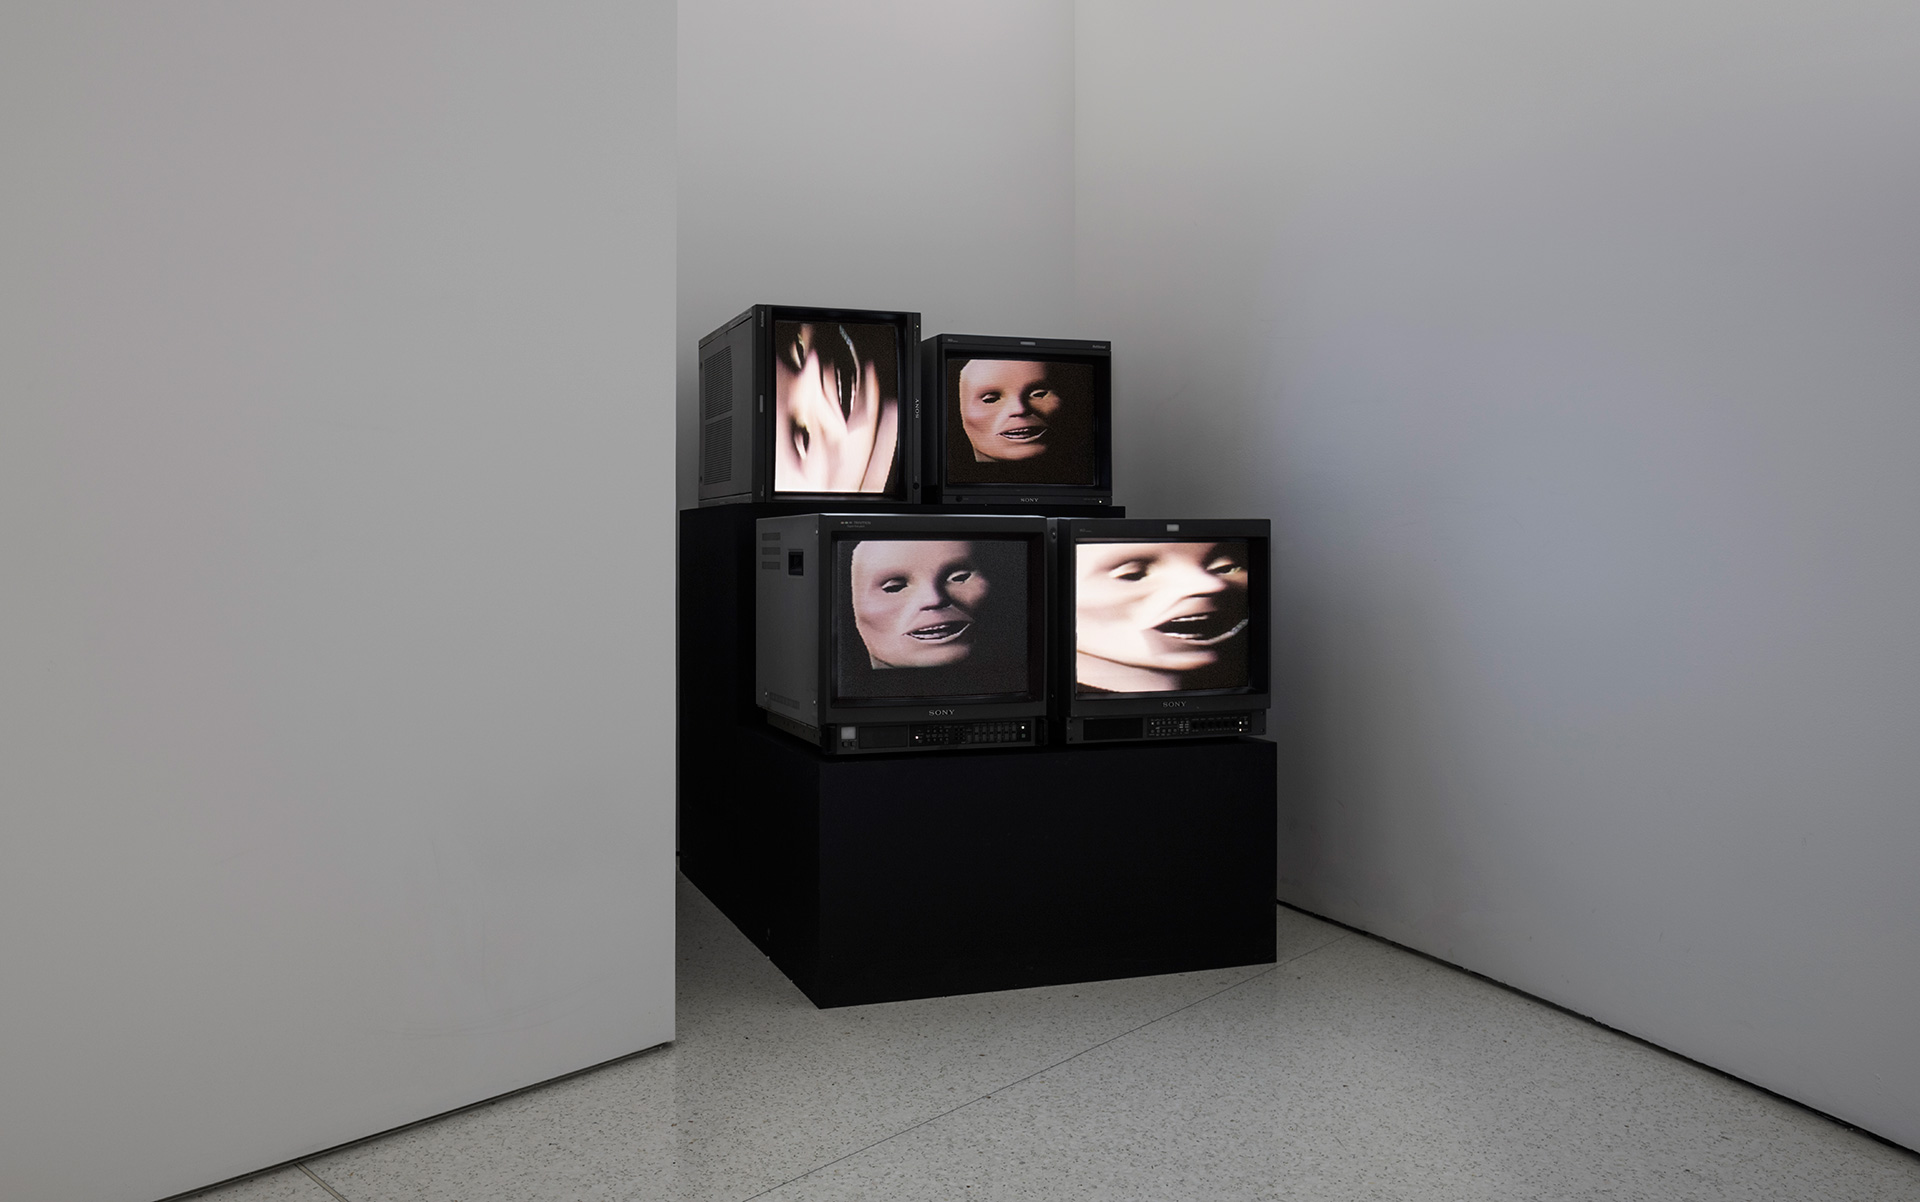 Wild Dead I, II, III (Danceteria Version), 1984. Two-channel video on CRT monitors with soundtracks by Stuart Argabright and Michael Diekmann. Installation view of Gretchen Bender: So Much Deathless at Red Bull Arts New York, 2019| Gretchen Bender | STIR